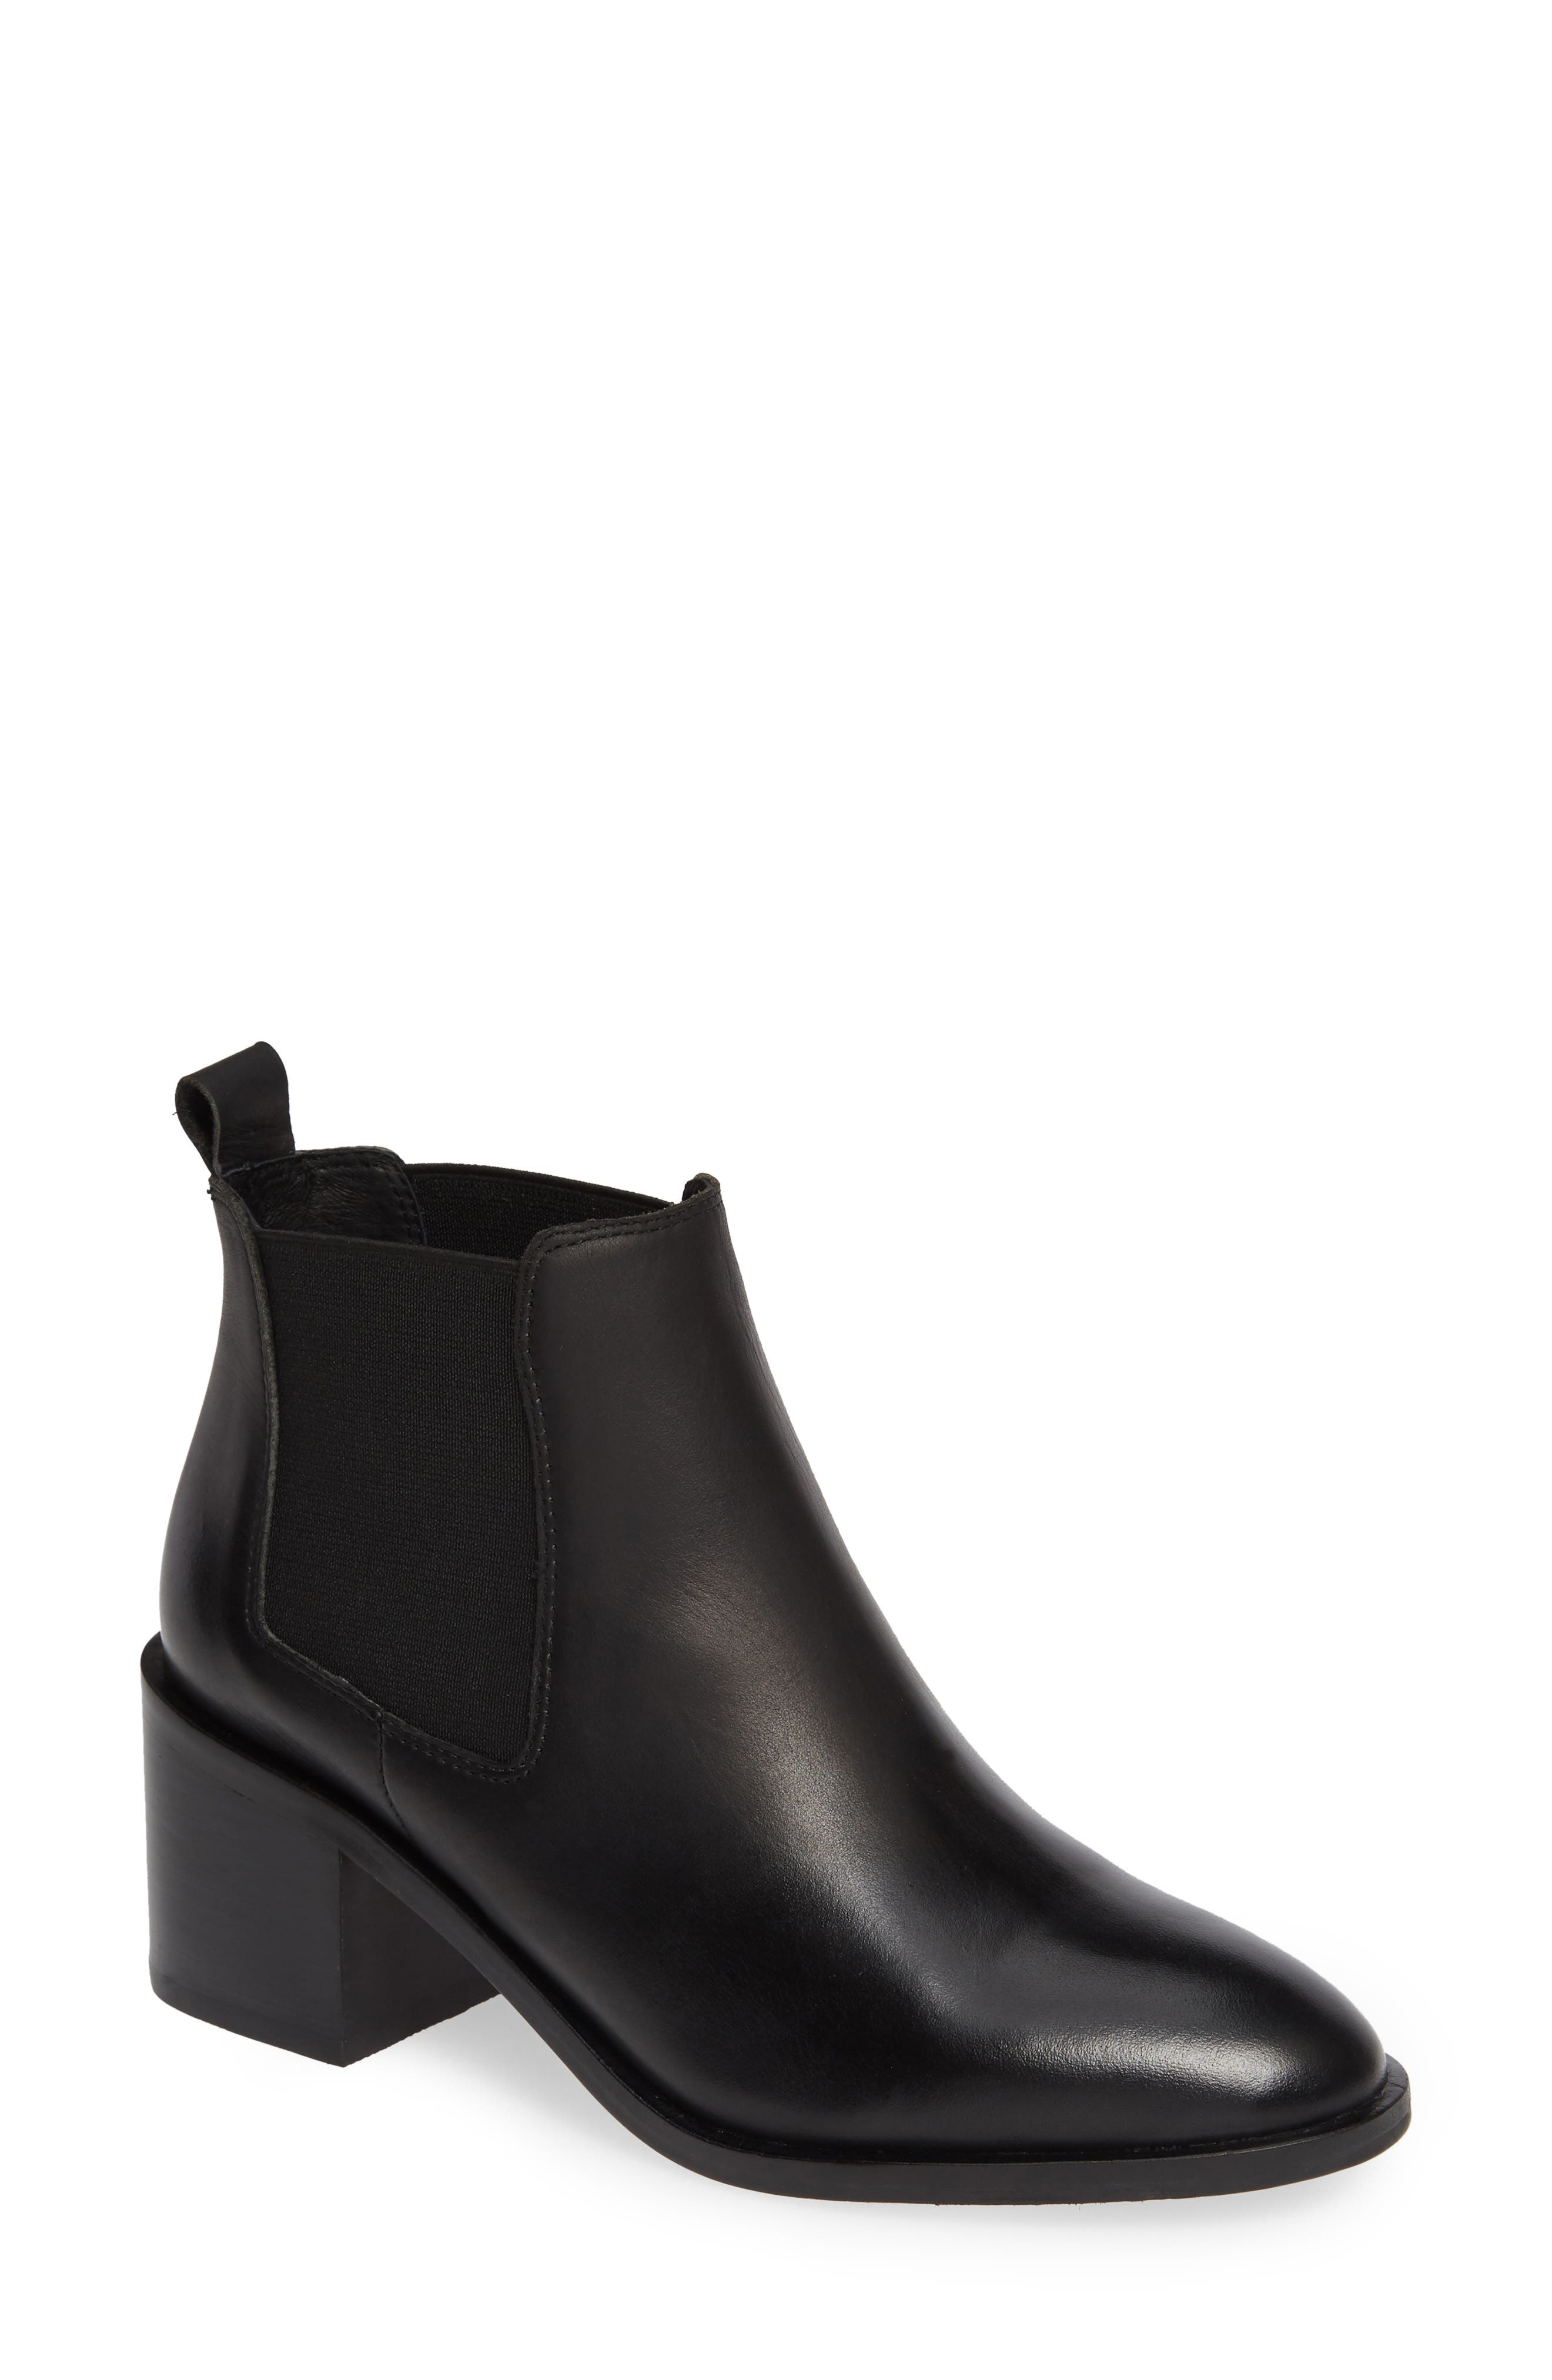 Galis Bootie in Black Leather